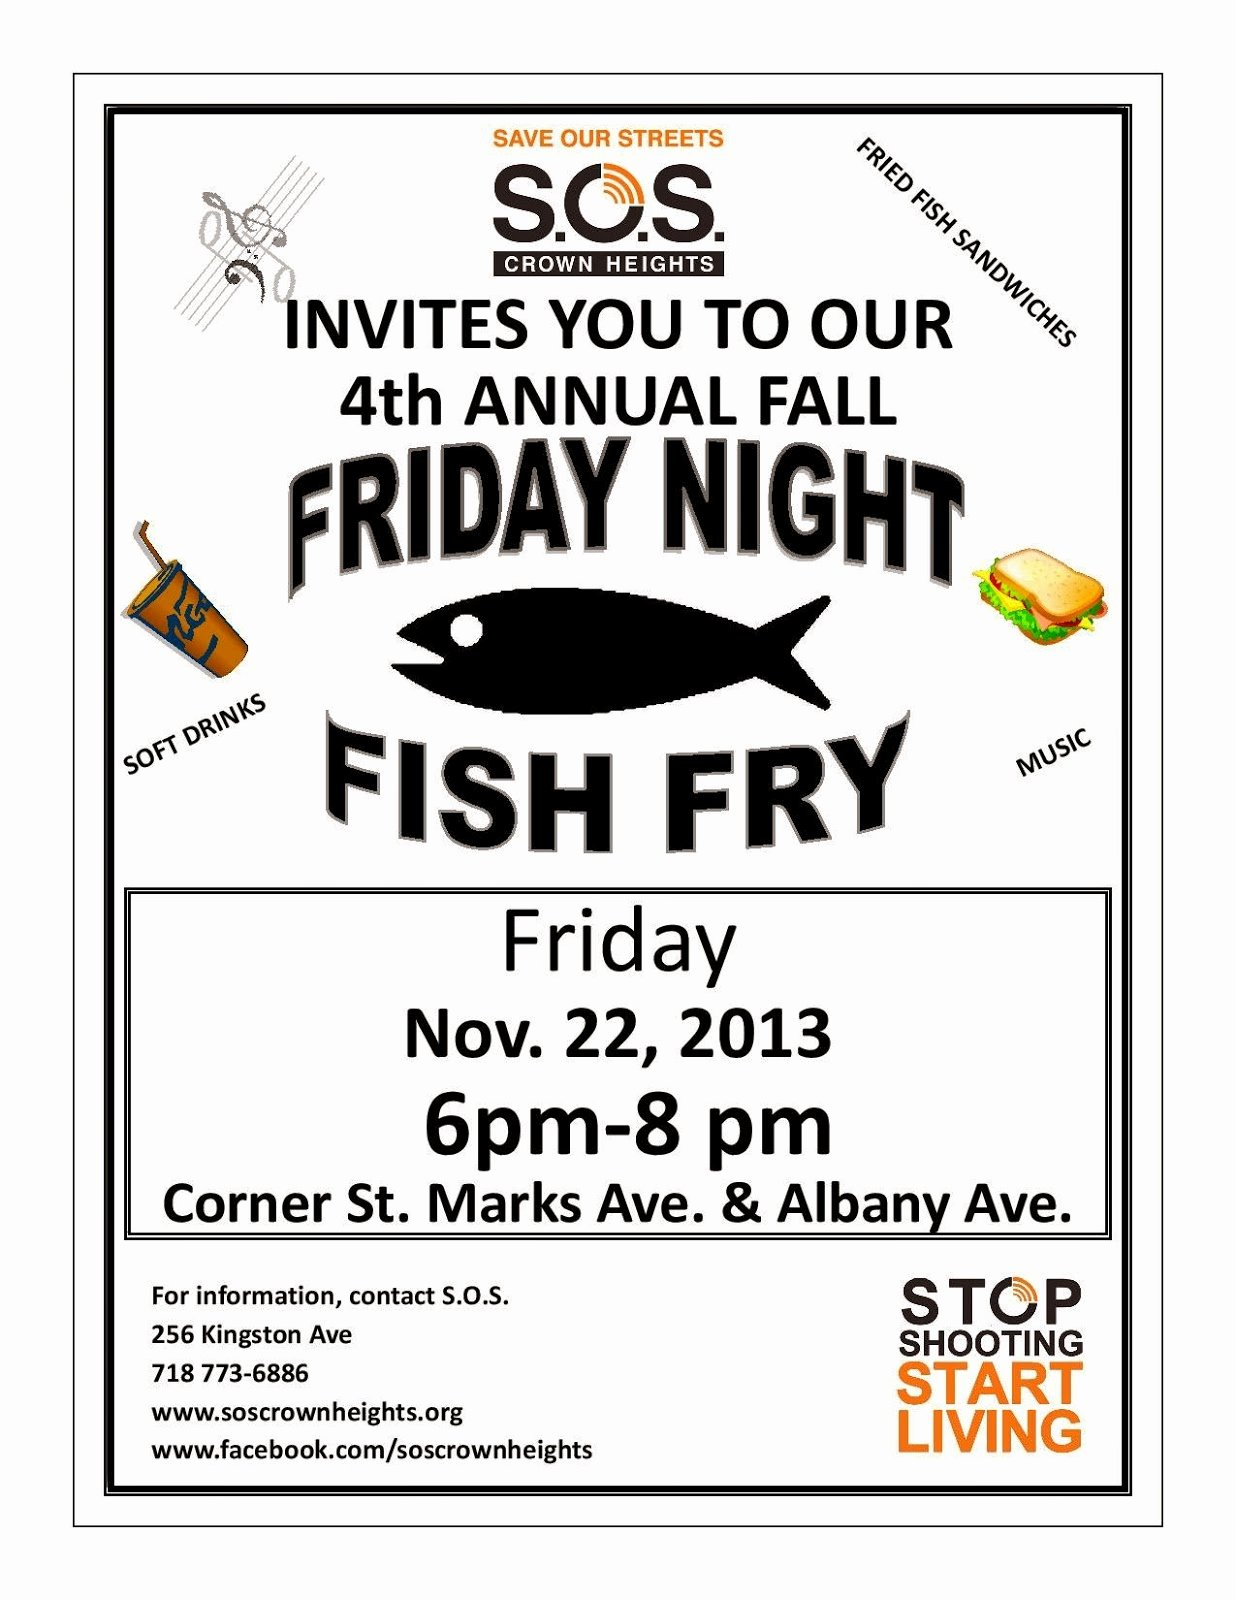 Free Fish Fry Flyer Template Beautiful S O S Crown Heights and S O S Bed Stuy Join Us for the Fall Fish Fry